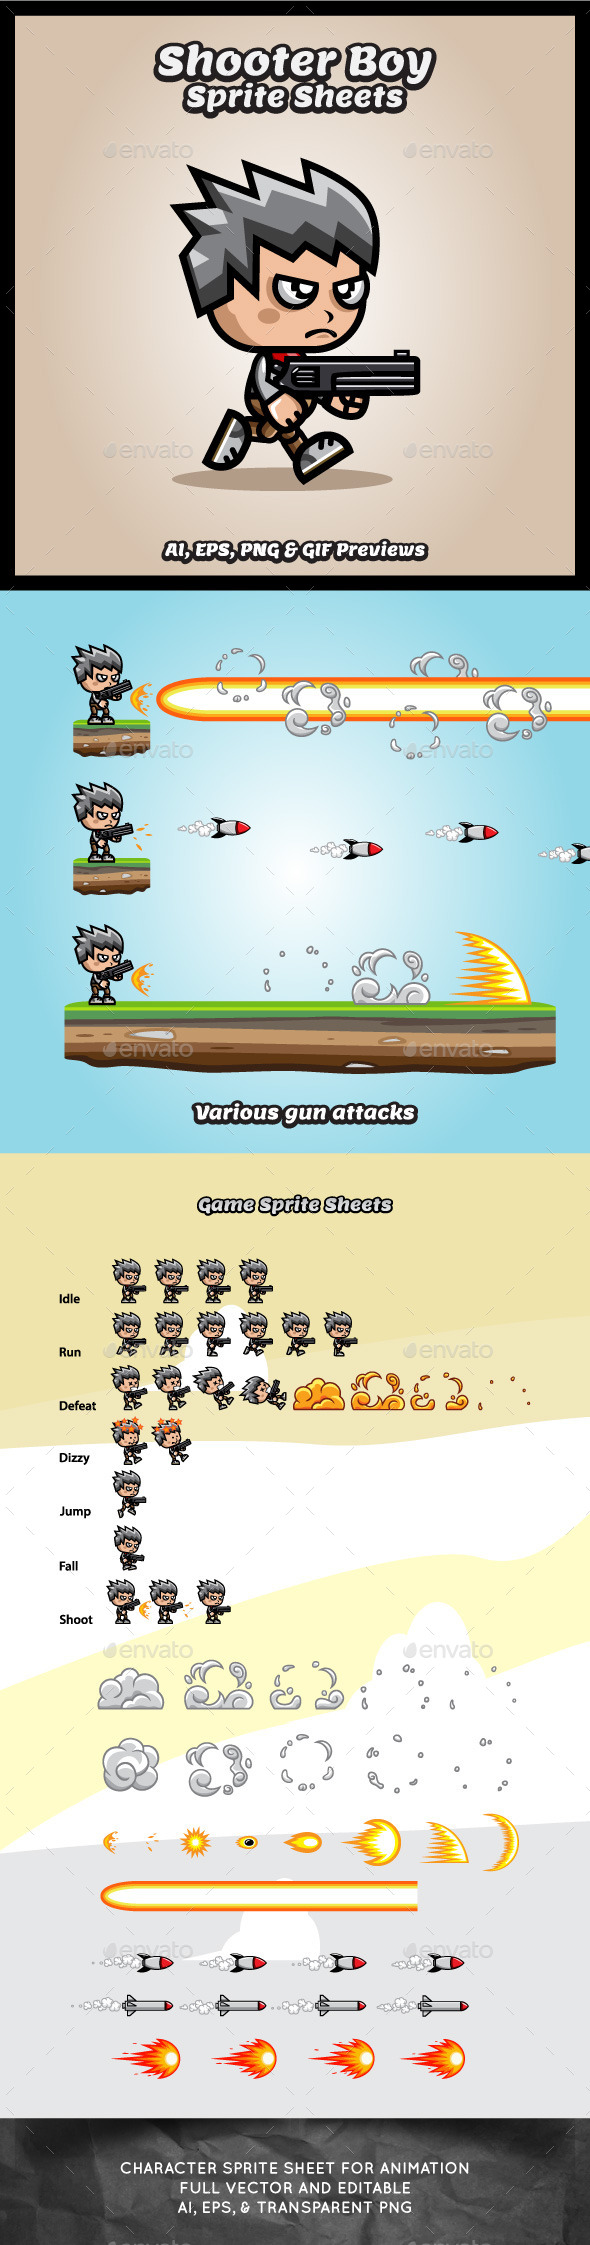 GraphicRiver Shooter Boy Game Character Sprite Sheets 9121988